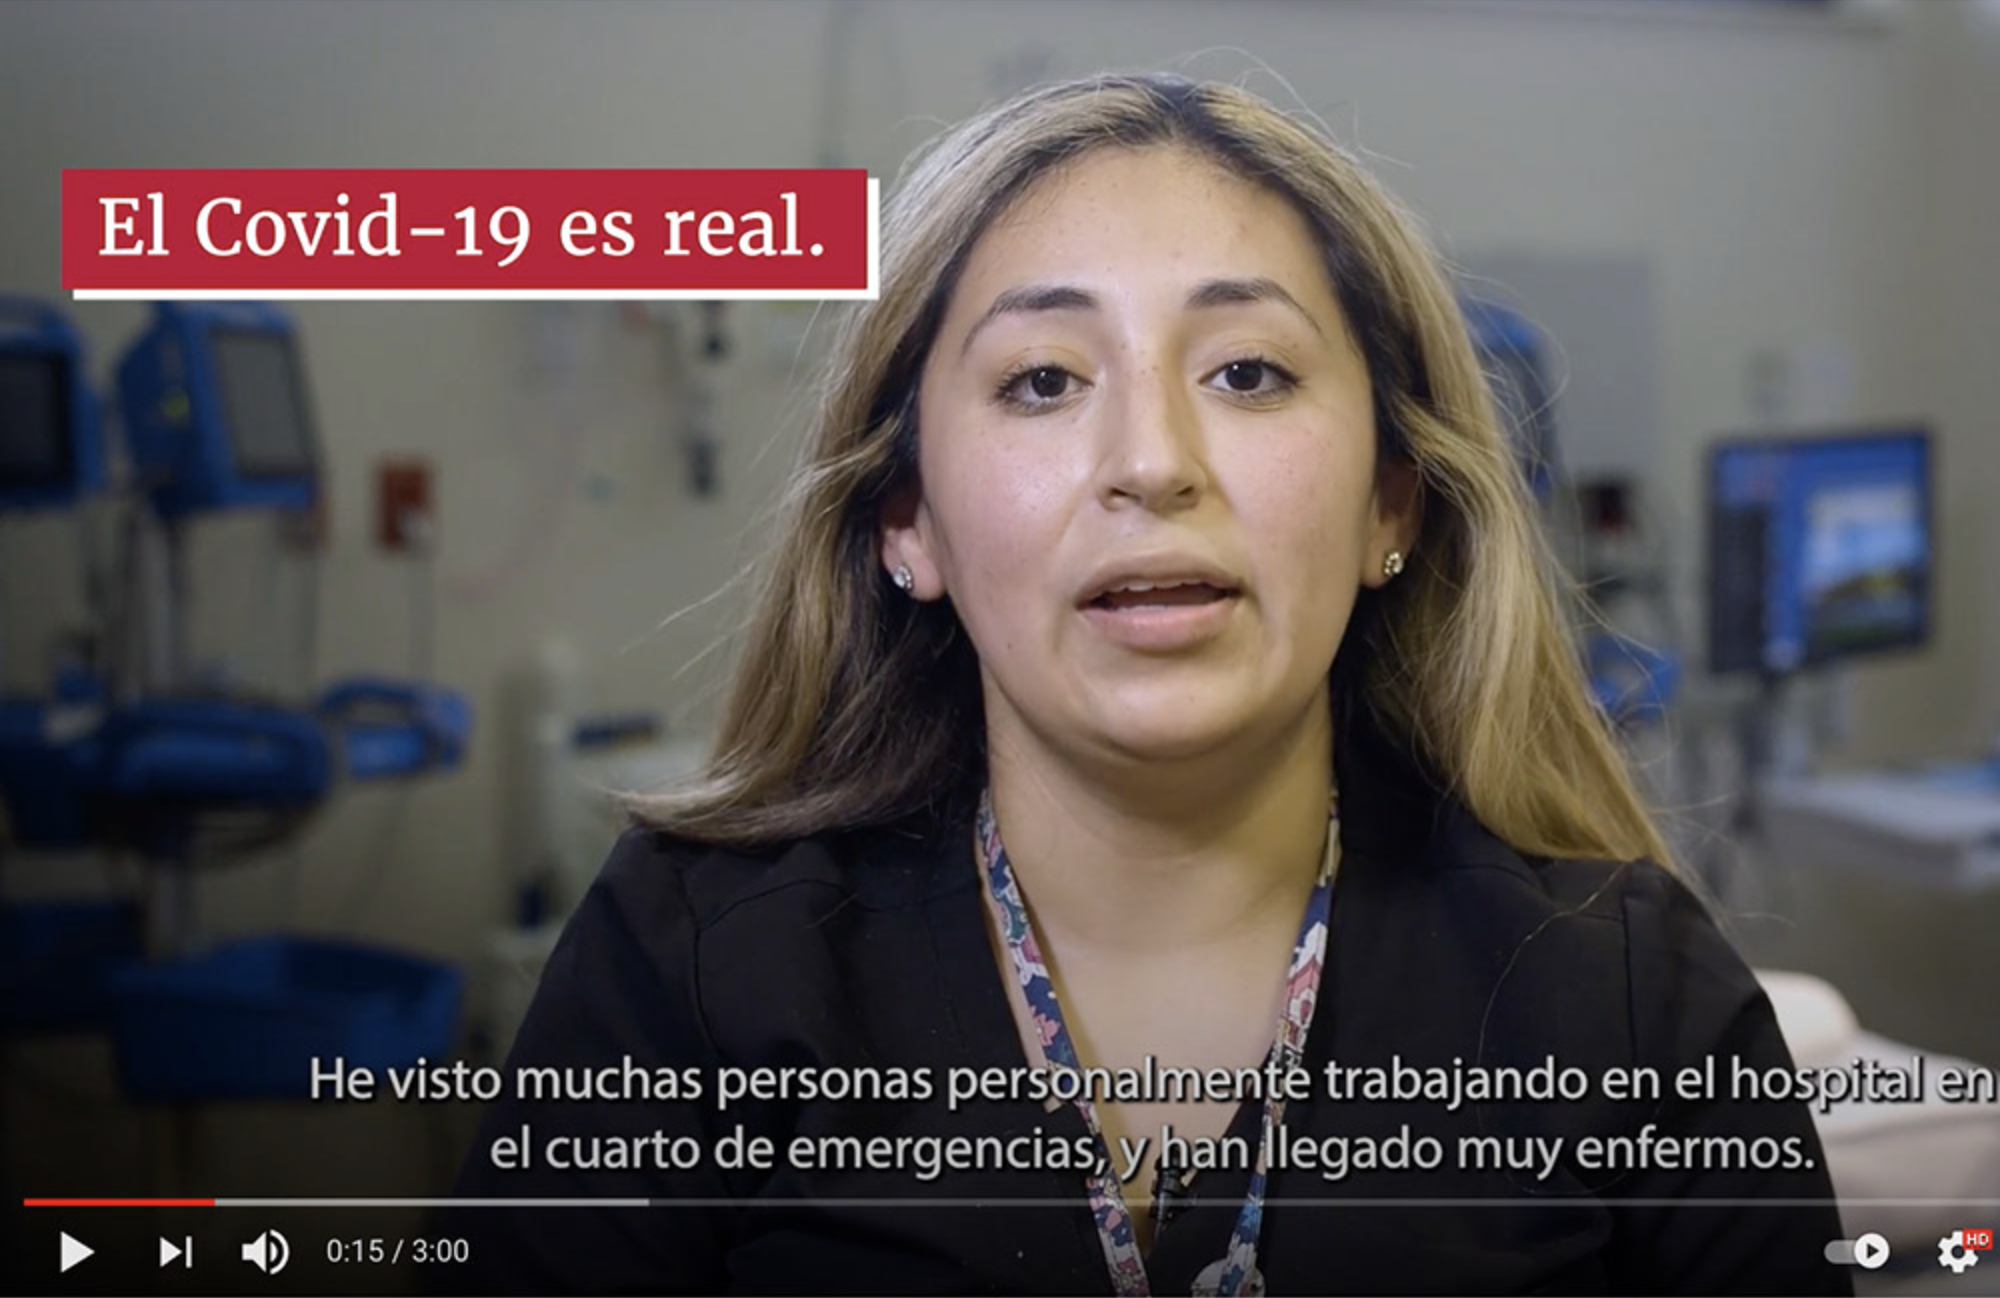 The first phase of the EXCITE initiative is to create a communications campaign using testimonial videos. In the videos, provided in both Spanish and English, community members offer firsthand accounts of why they got the vaccine to encourage others to get vaccinated.